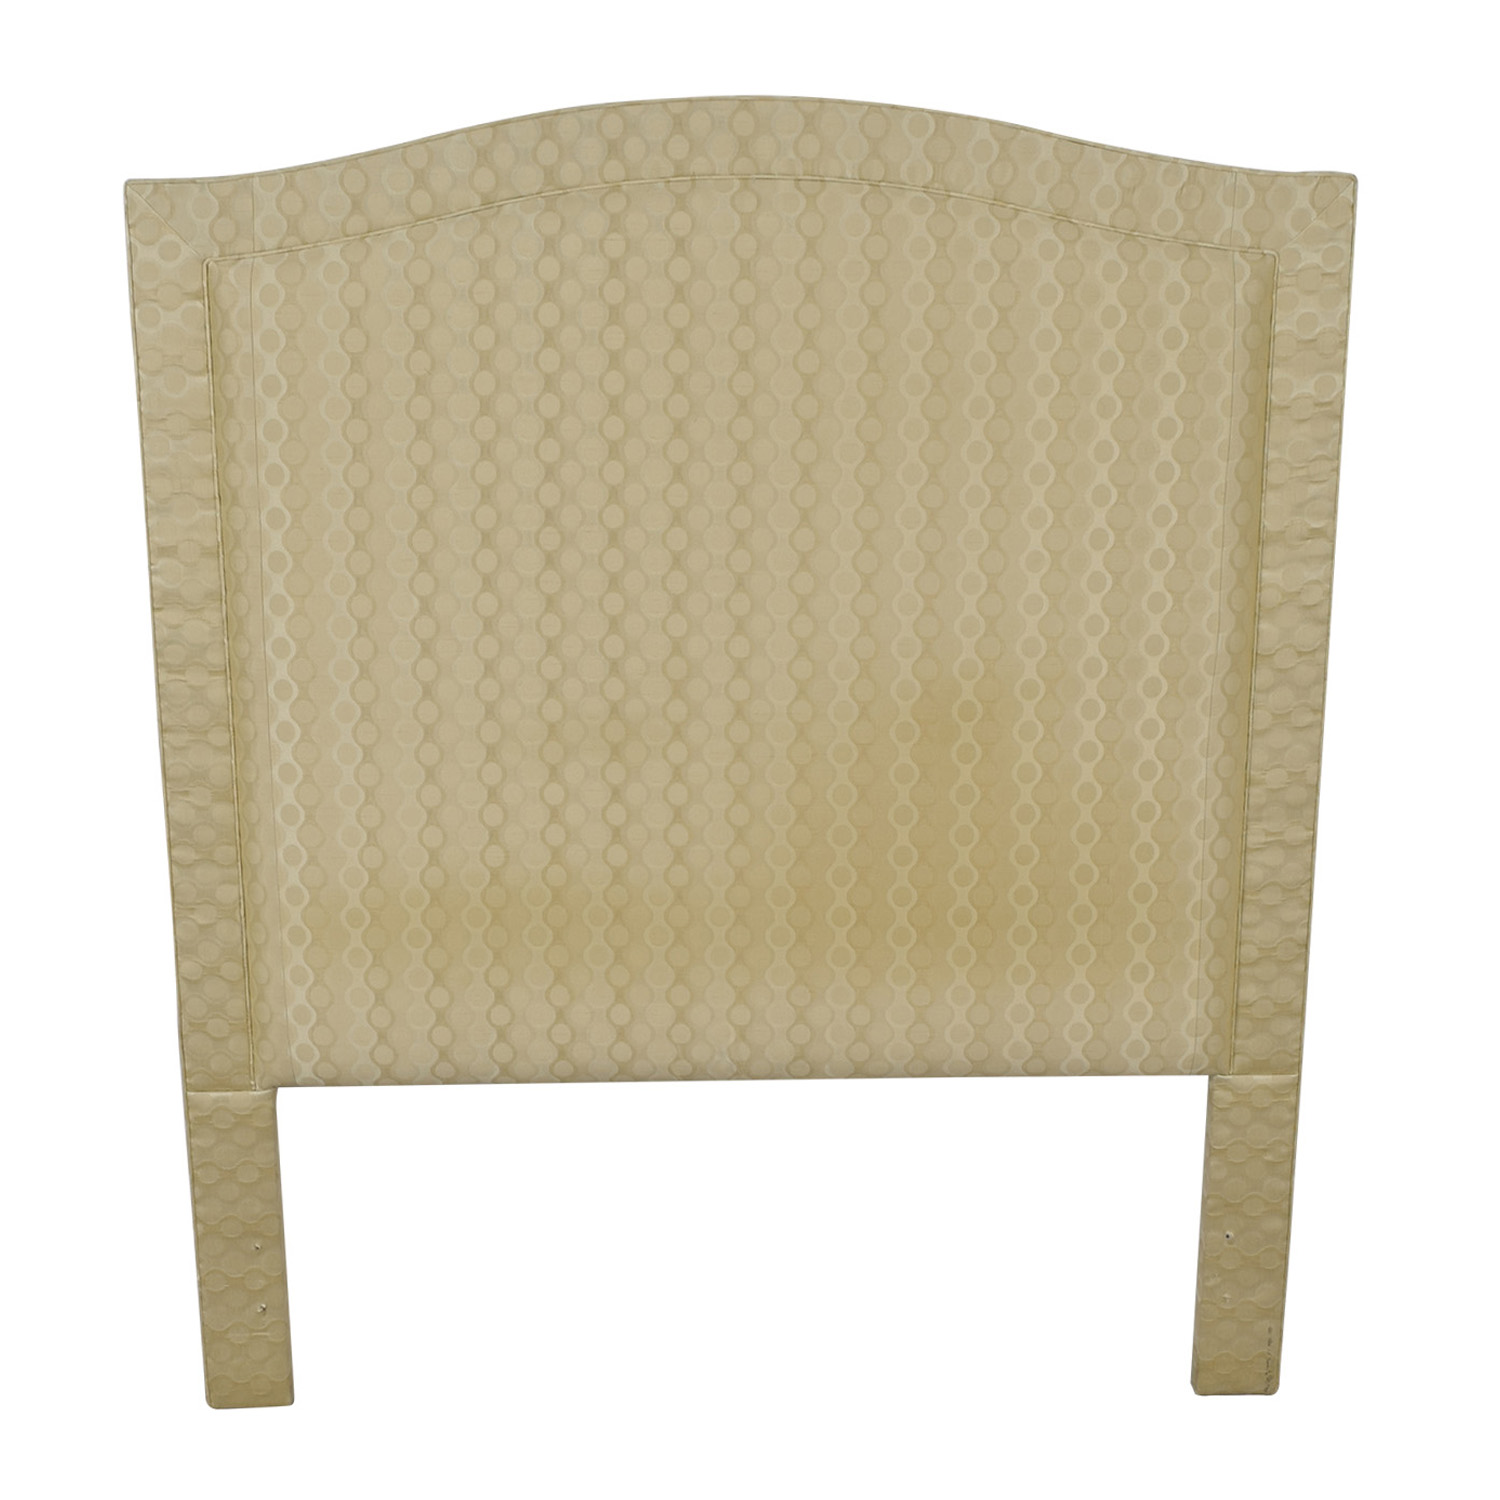 Beige Upholstered Queen Headboard dimensions